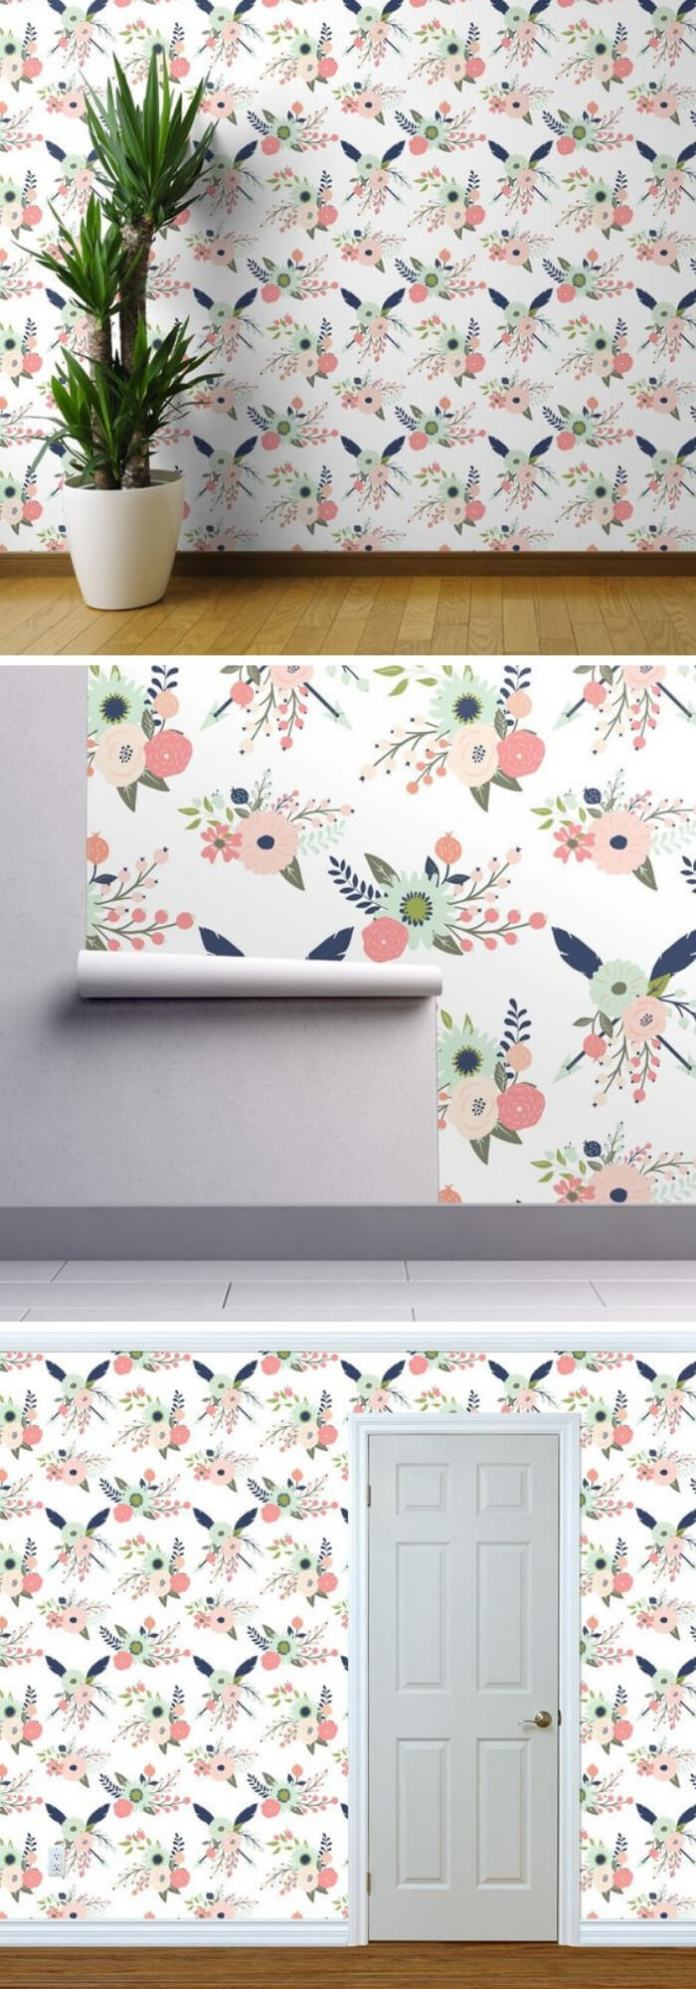 Home Decorating Ideas With Flowers: Floral Wallpaper - Gracie Blooms